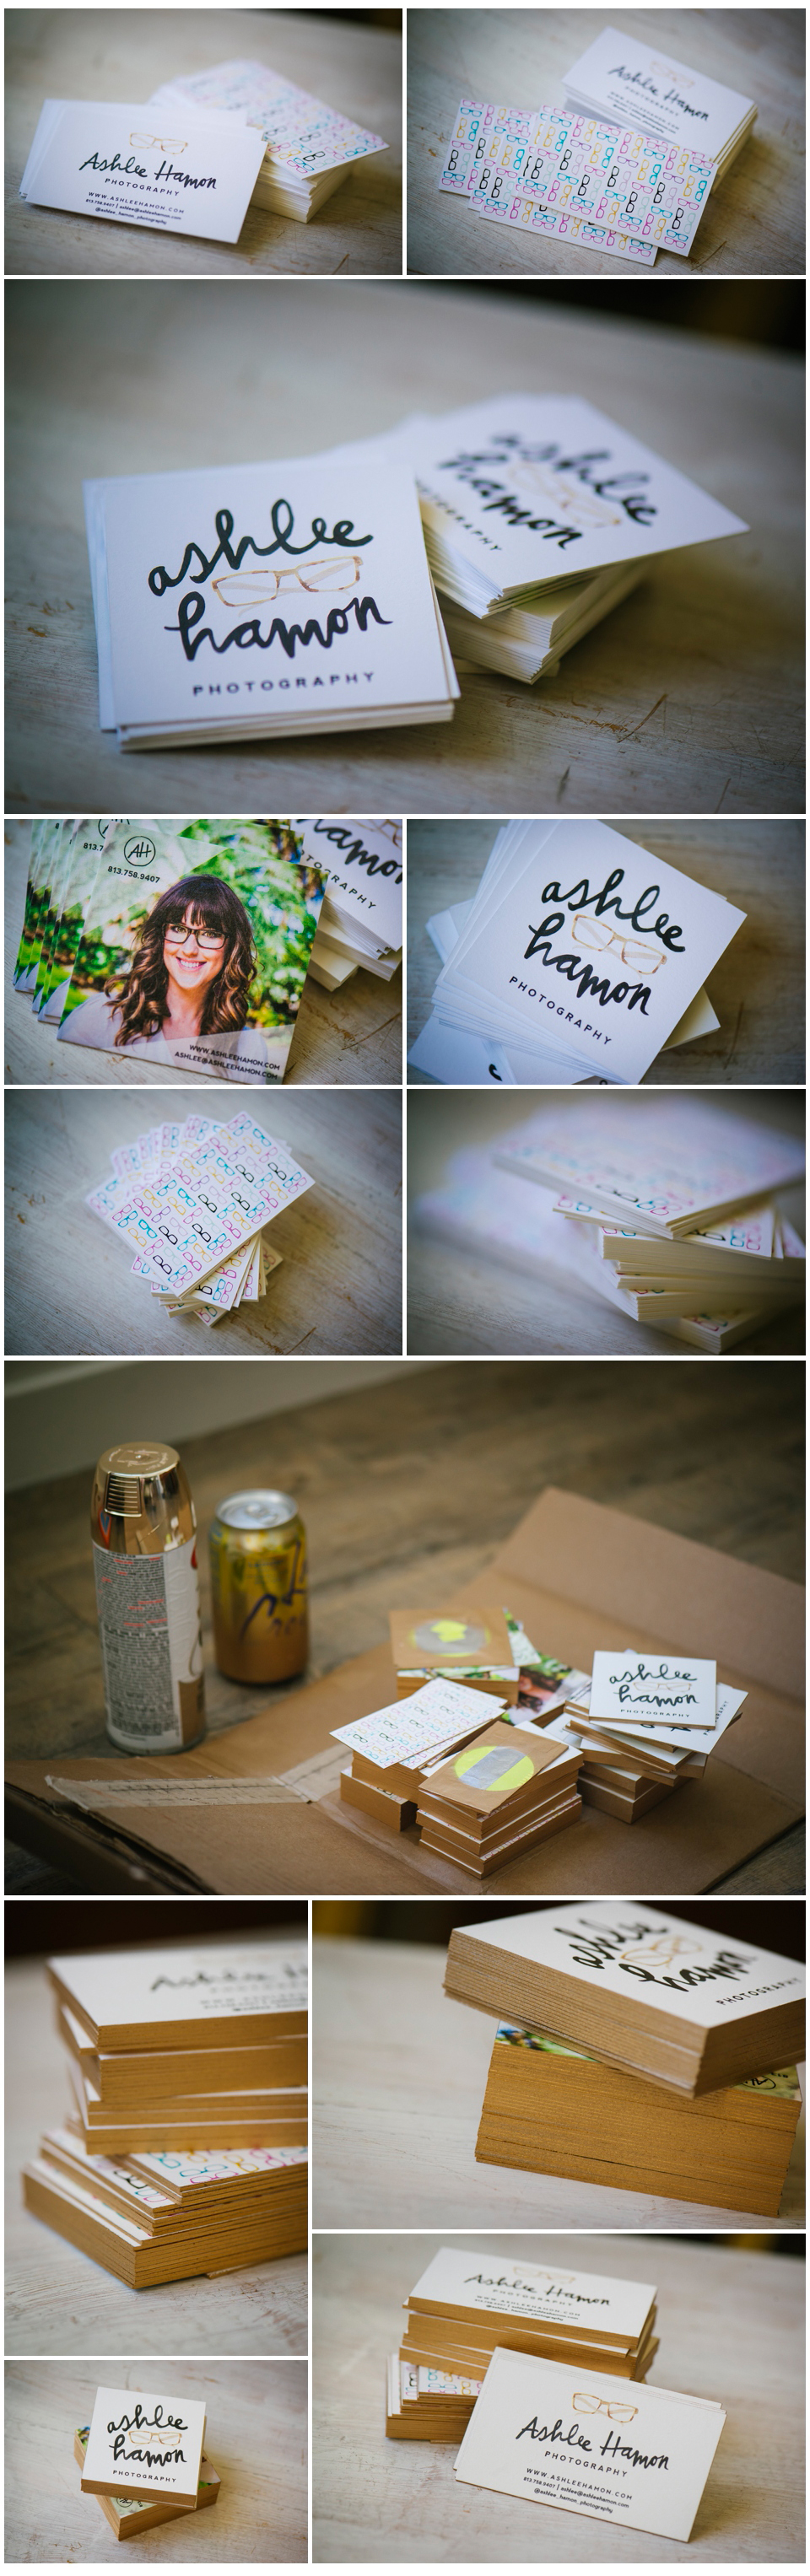 Ashlee Hamon Photography Business Cards